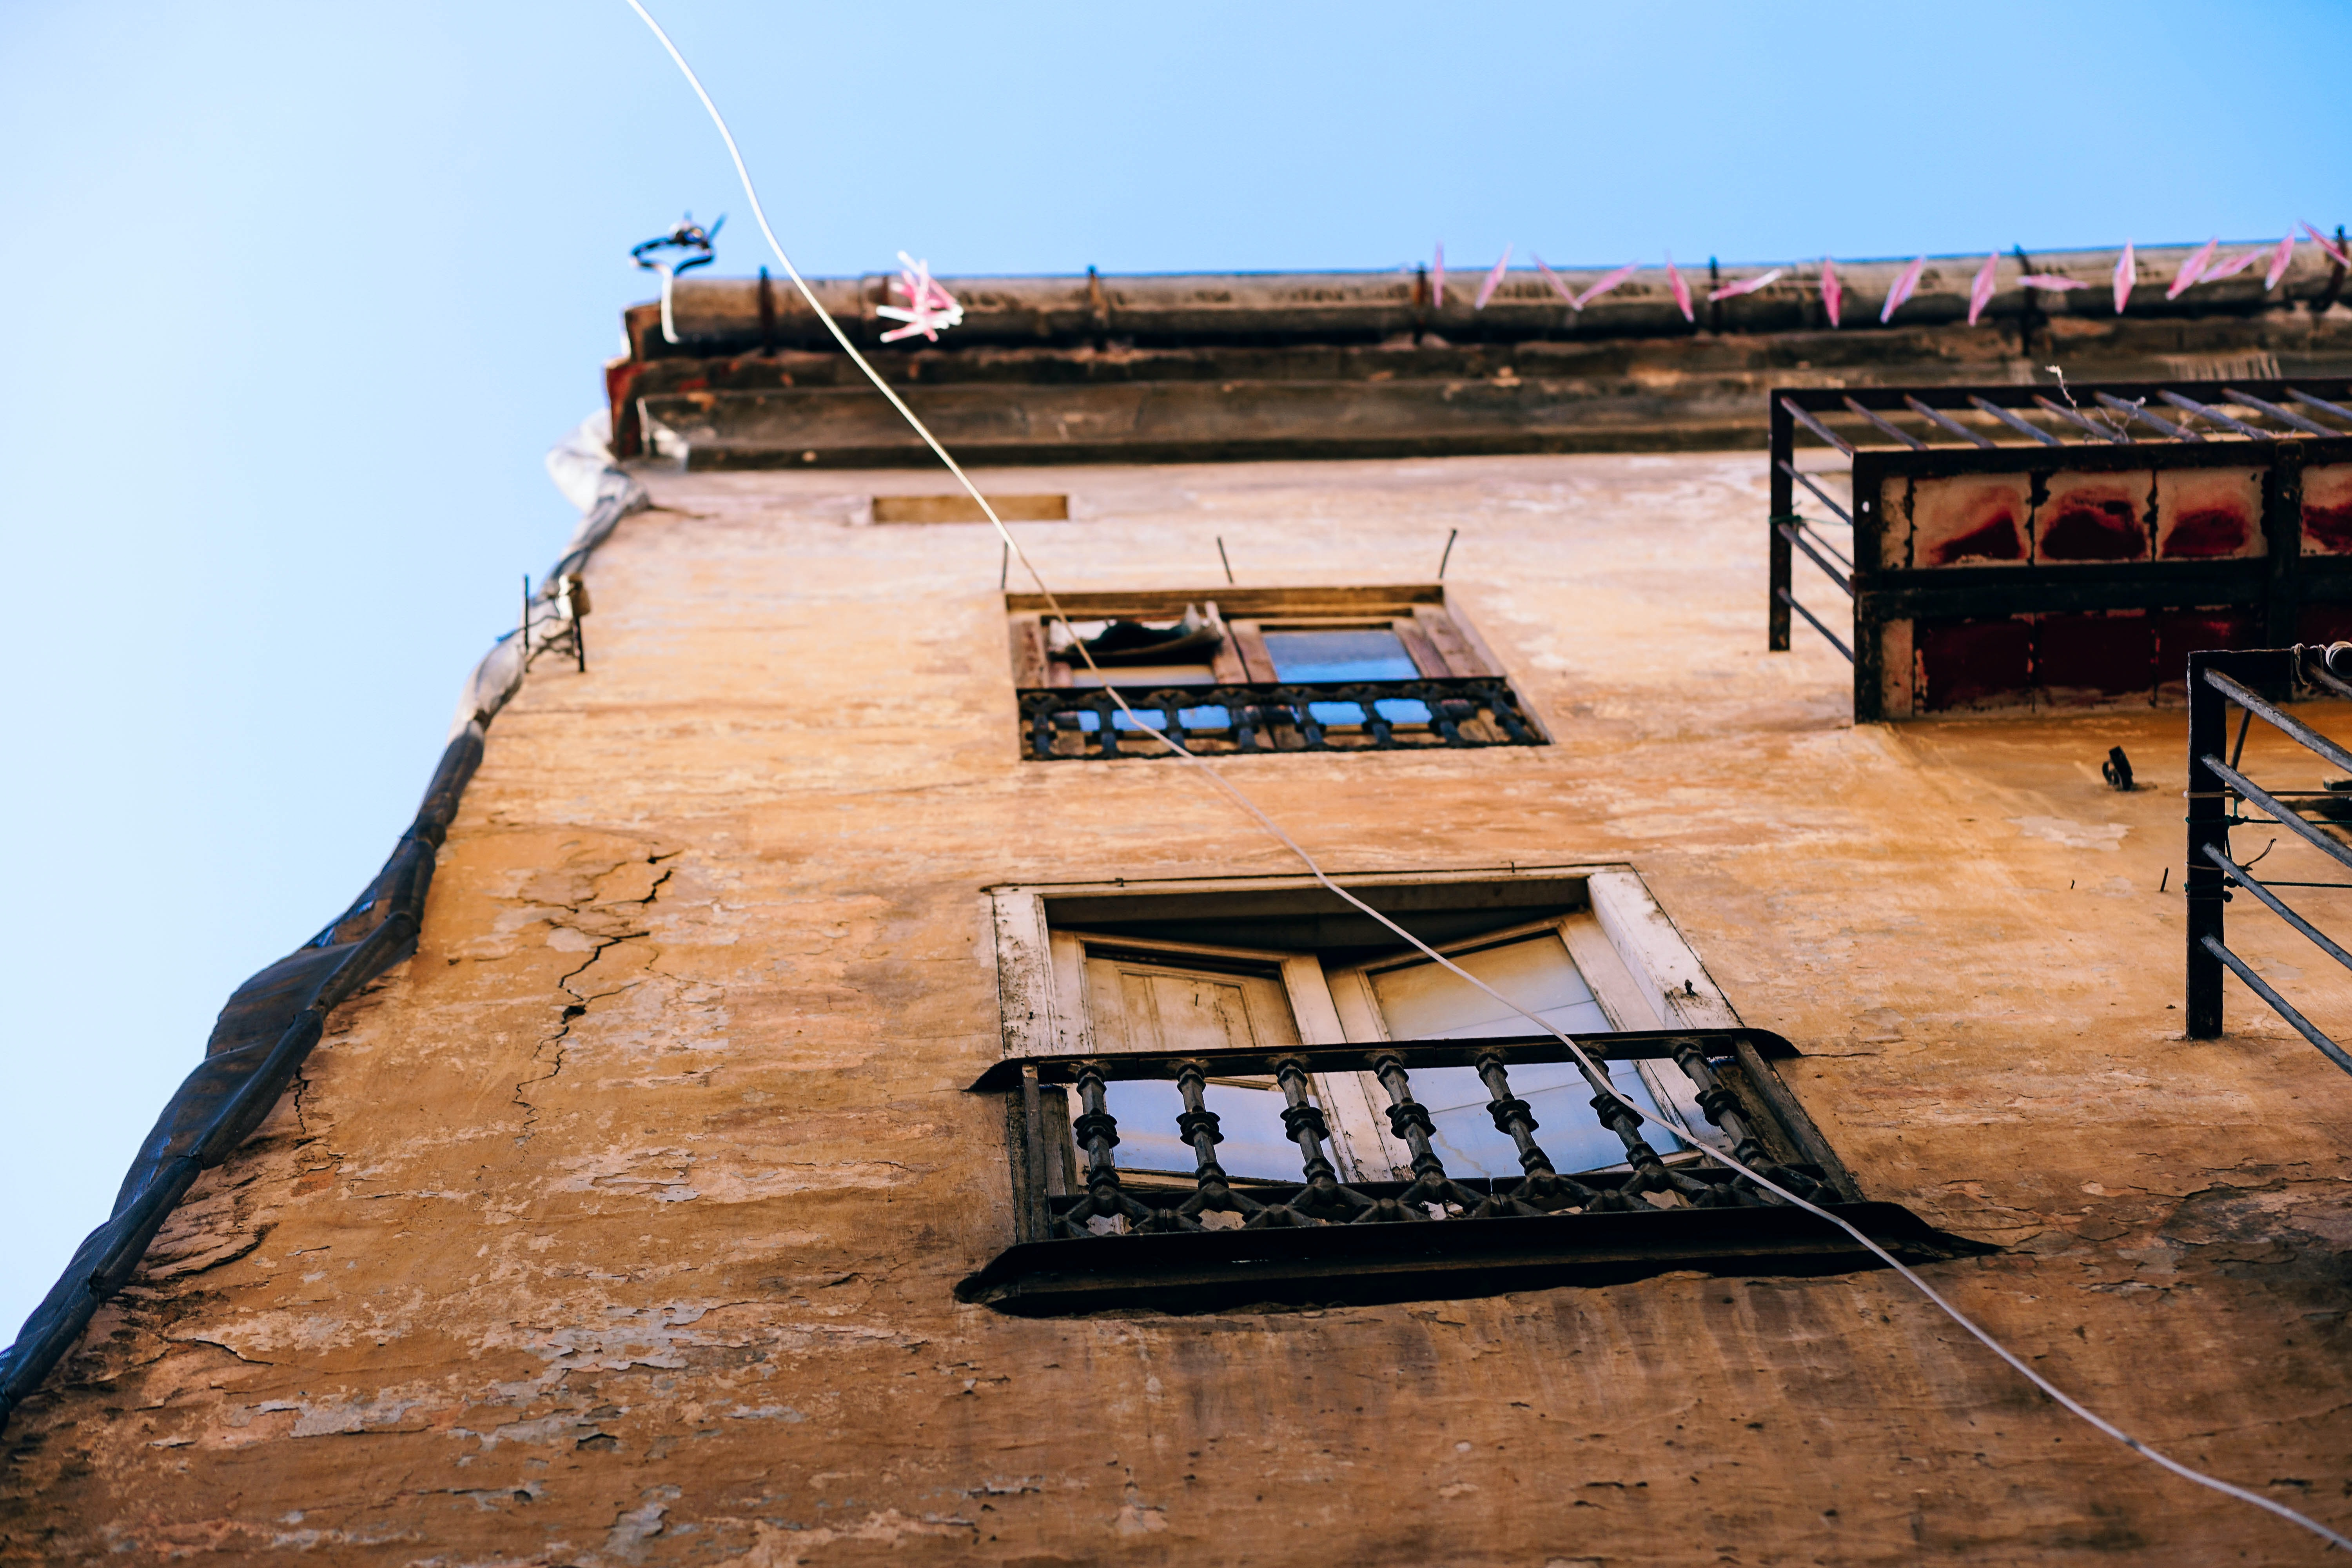 A low-angle shot of the dilapidated facade of an old building